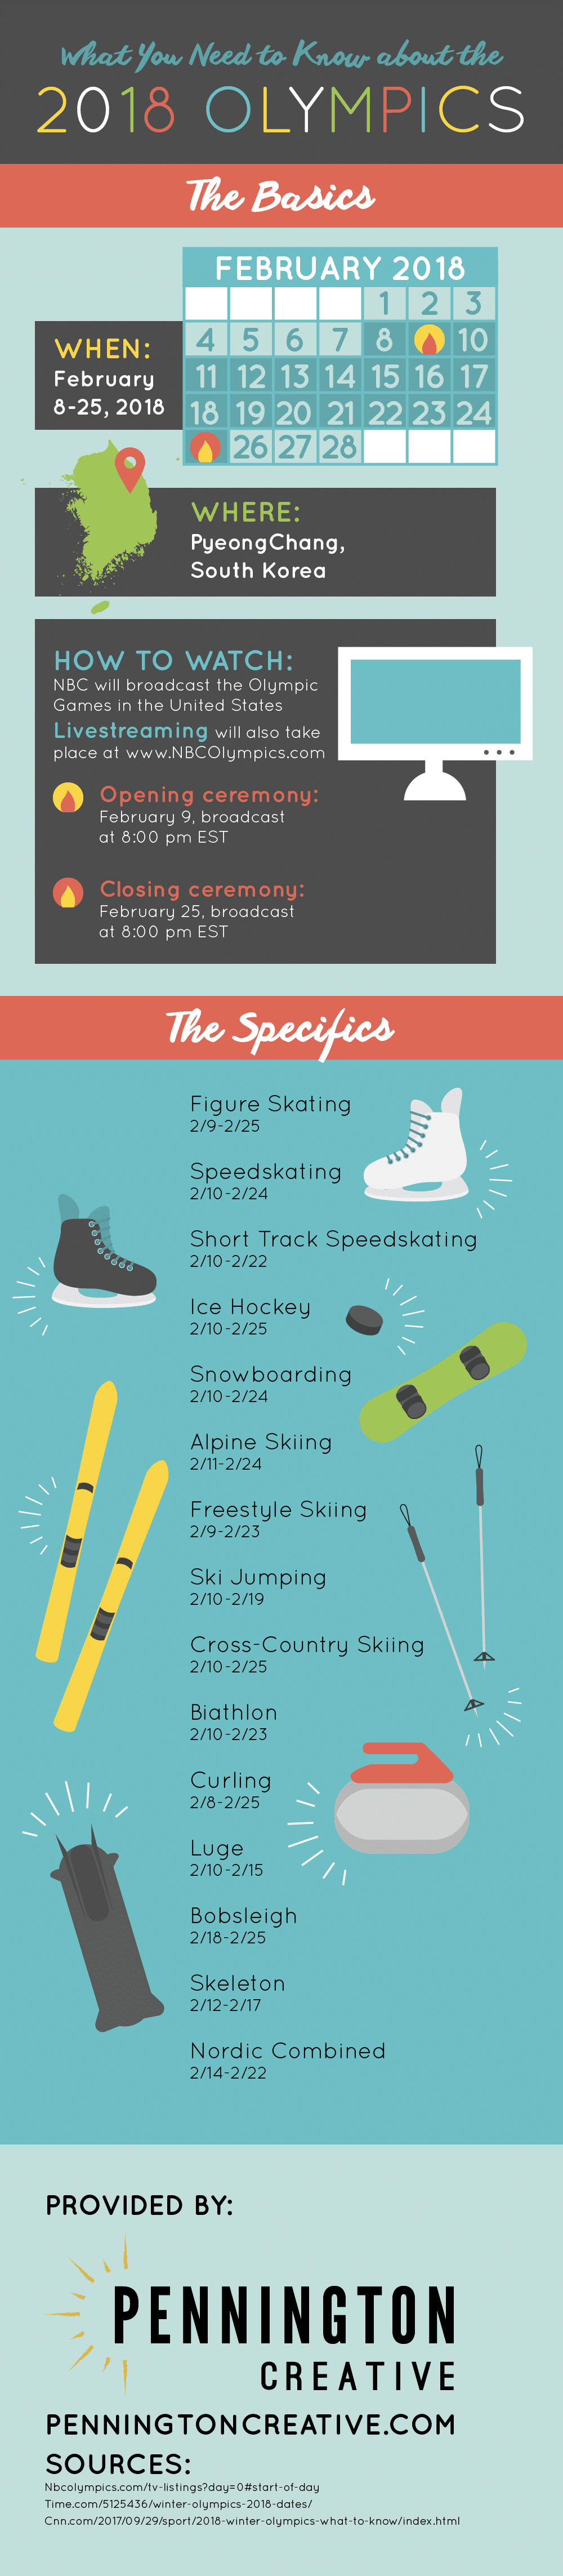 Infographic with dates and viewing info for the 2018 Winter Olympic Games.